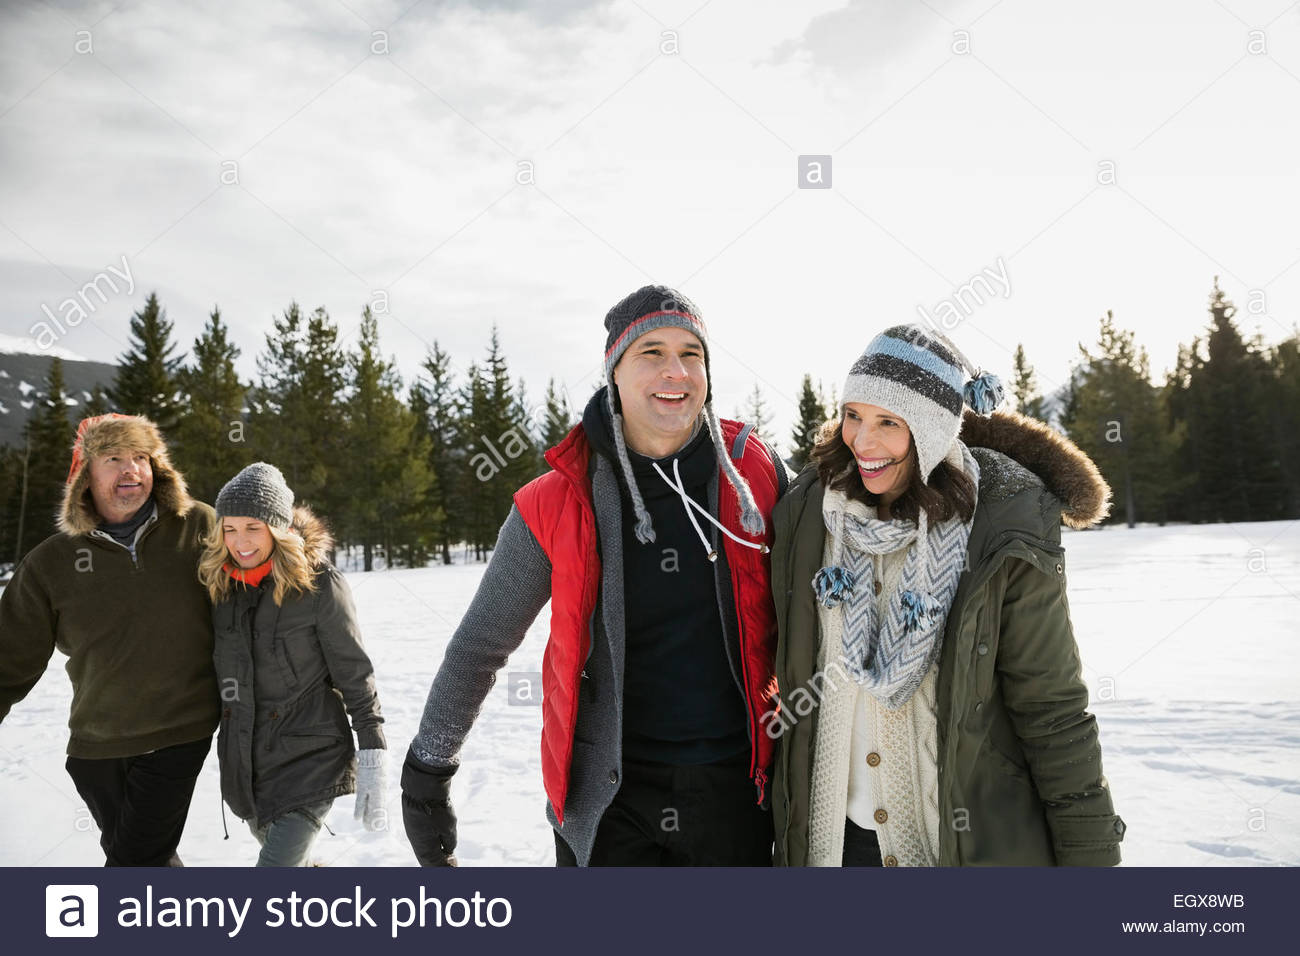 Smiling couples walking in snowy field Photo Stock